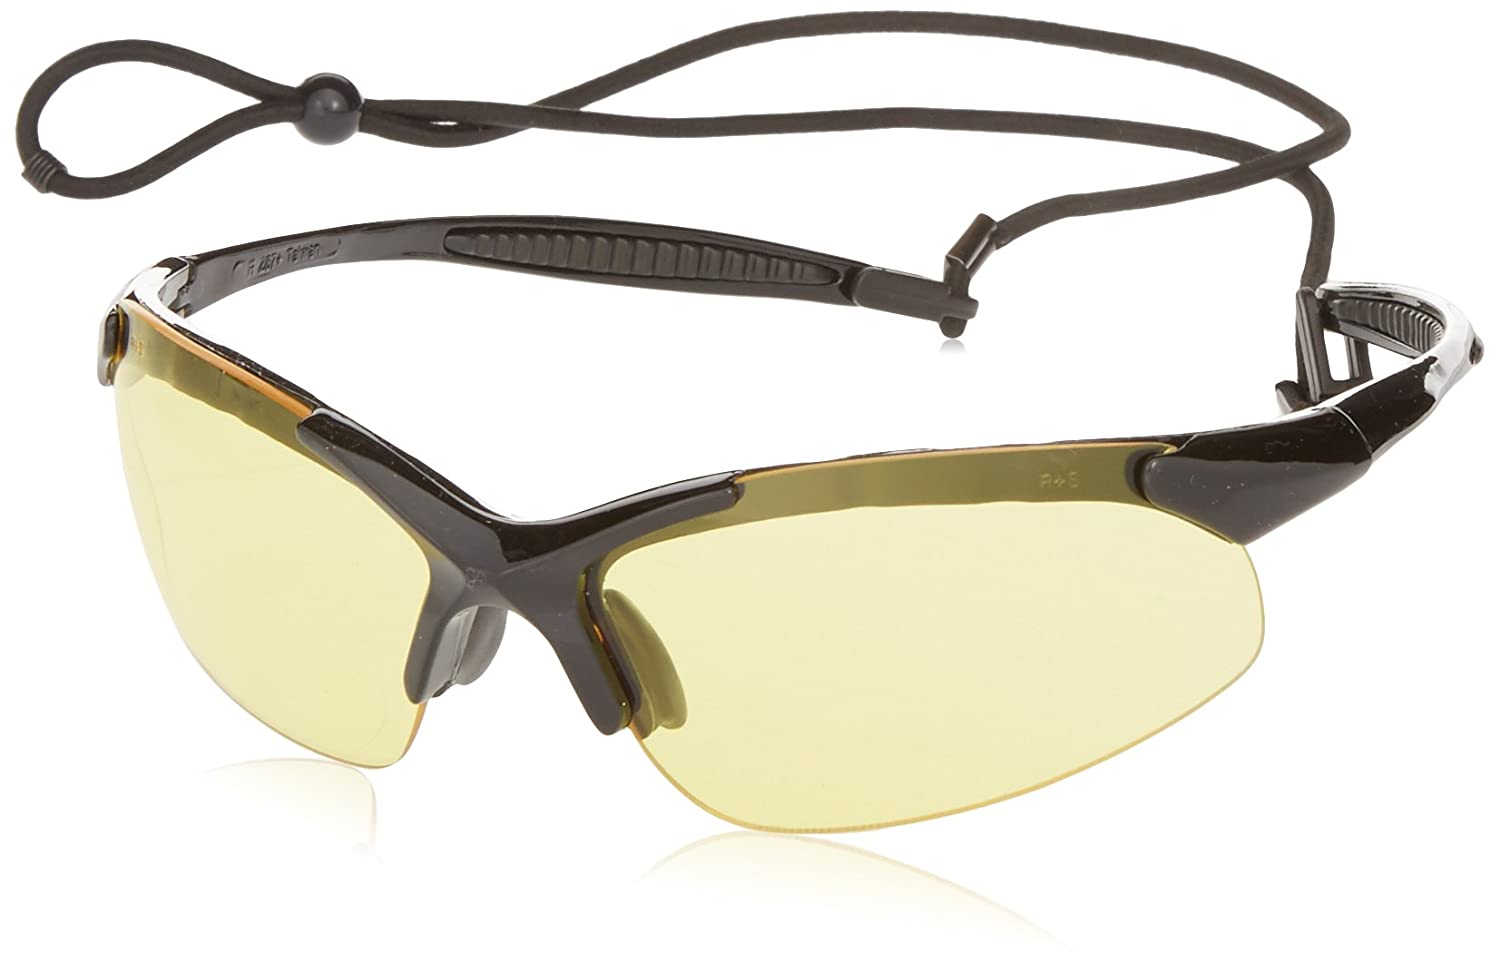 Radians IN1-40 Rad-Infinity Sporty Lightweight Black Frame Glasses with Amber Lens